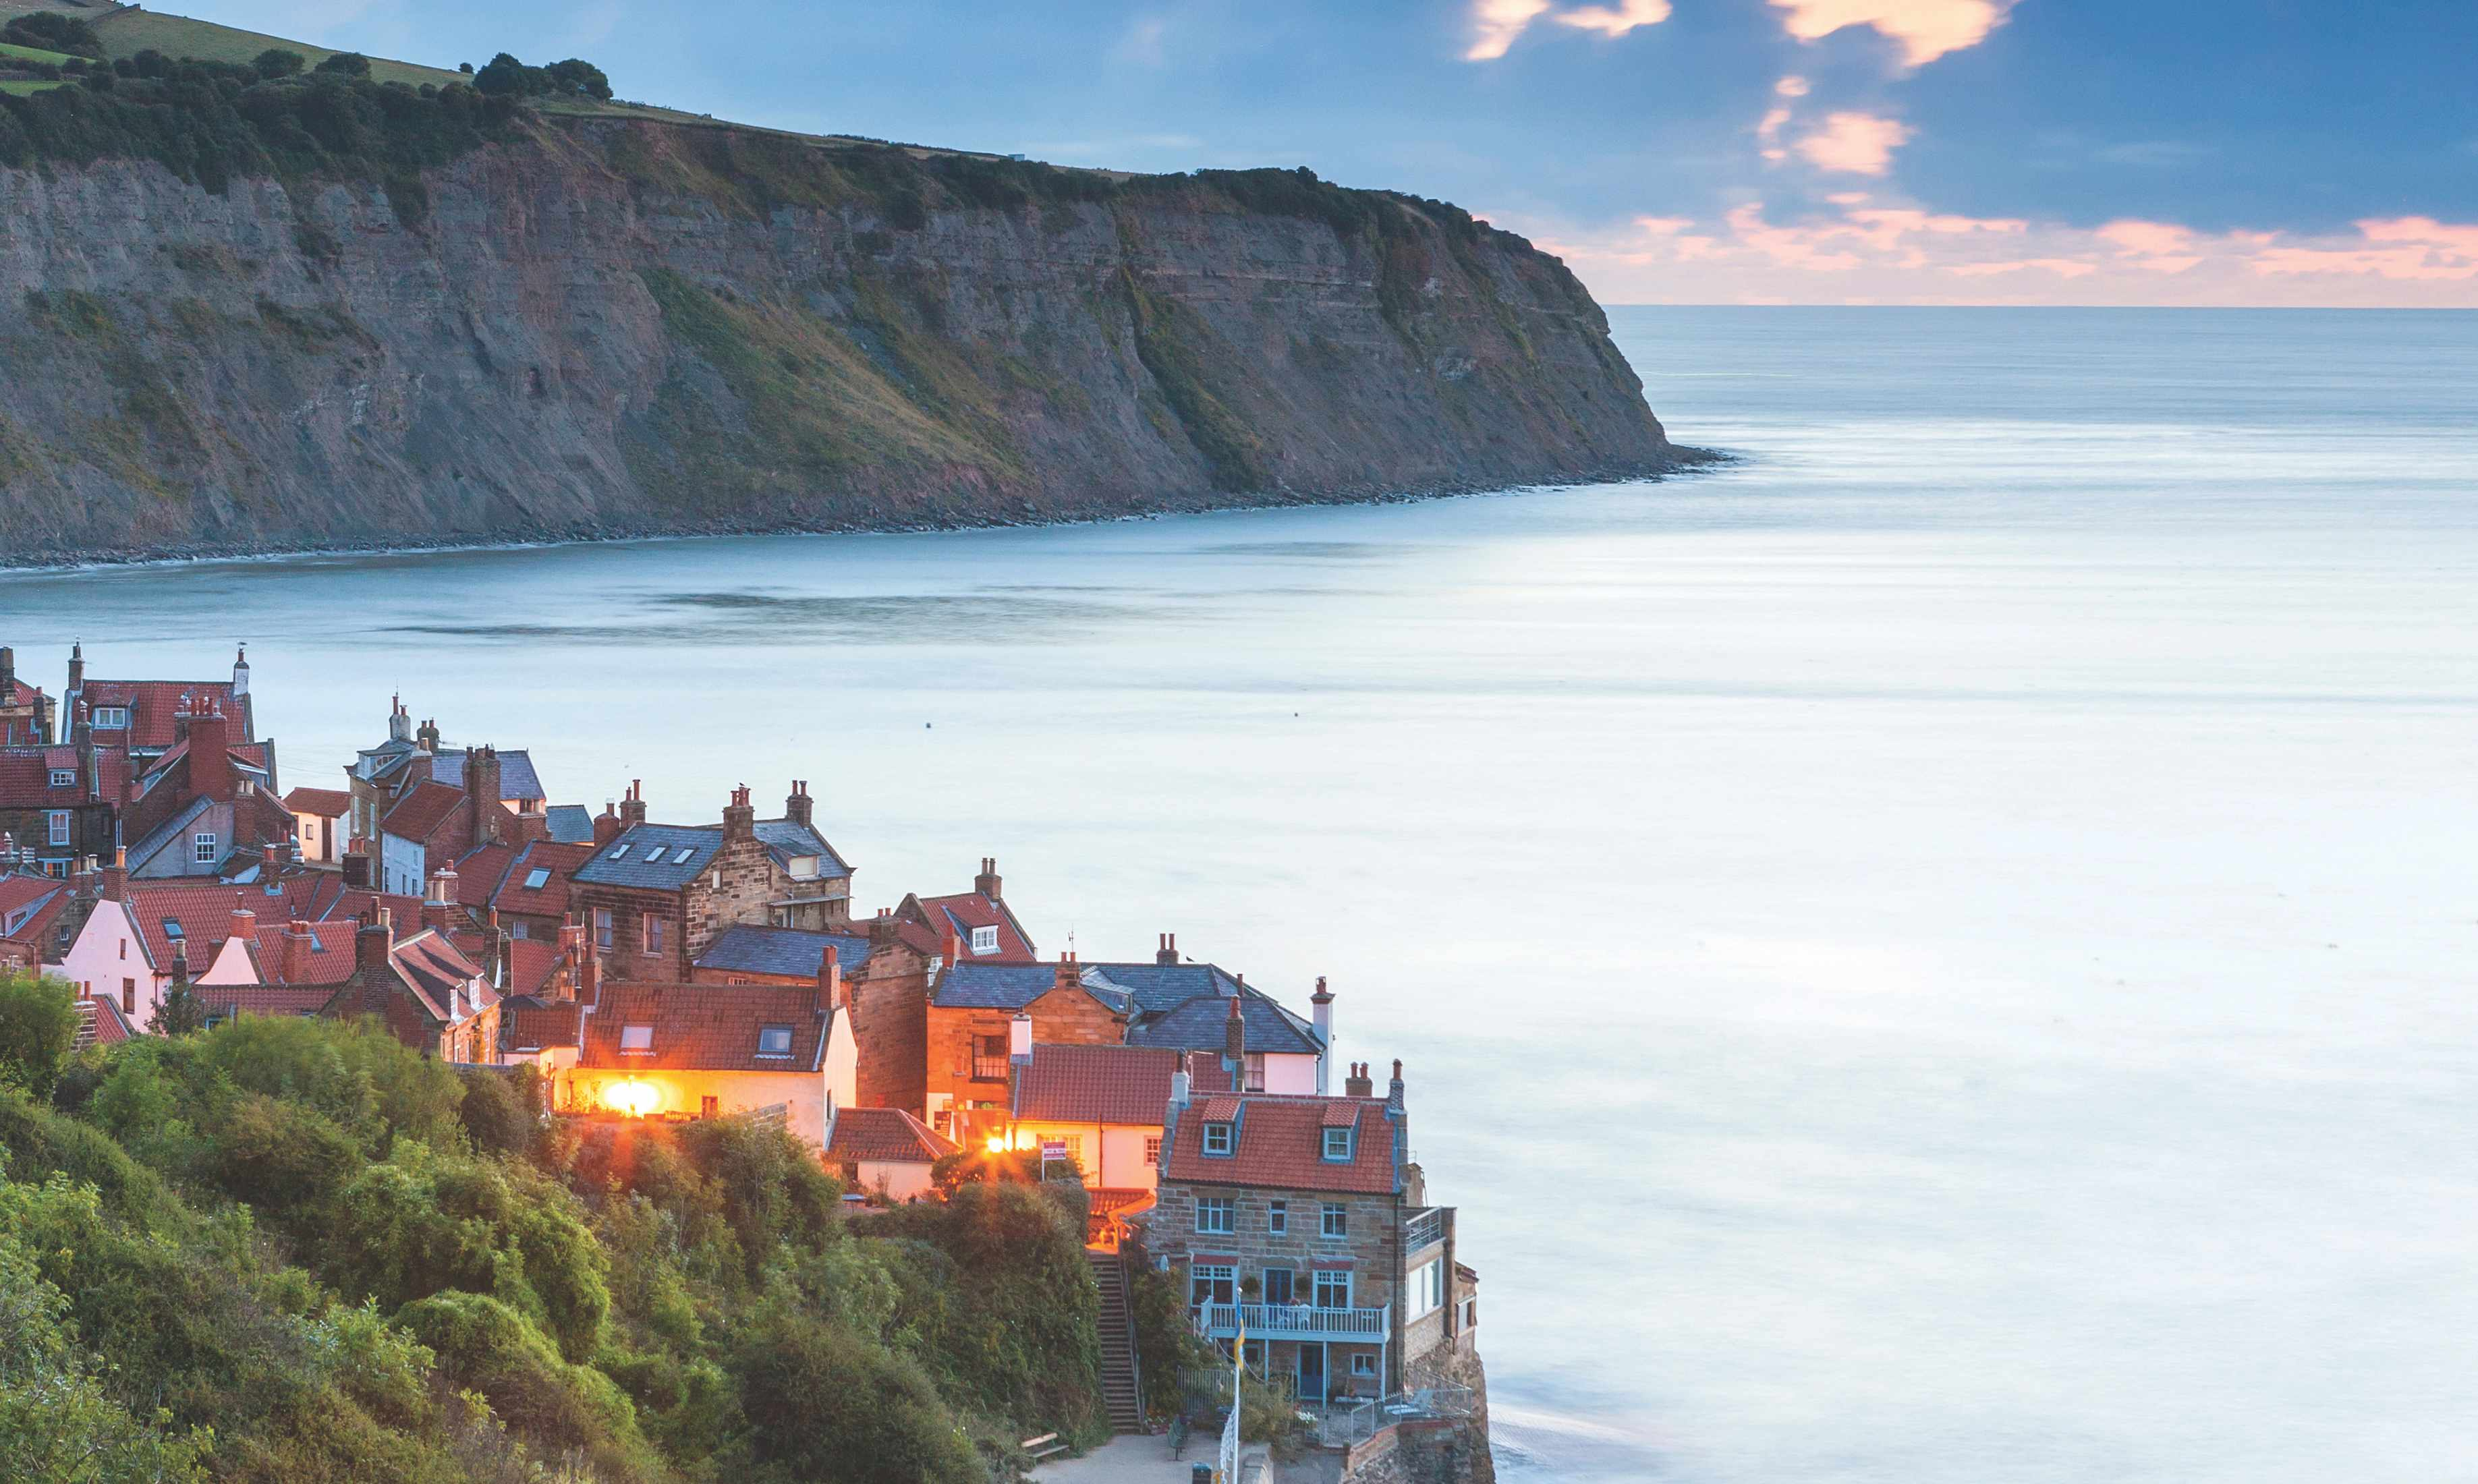 United Kingdom, UK, England, North Yorkshire, Great Britain, North York Moors National Park, British Isles, Robin Hood�s Bay at dusk